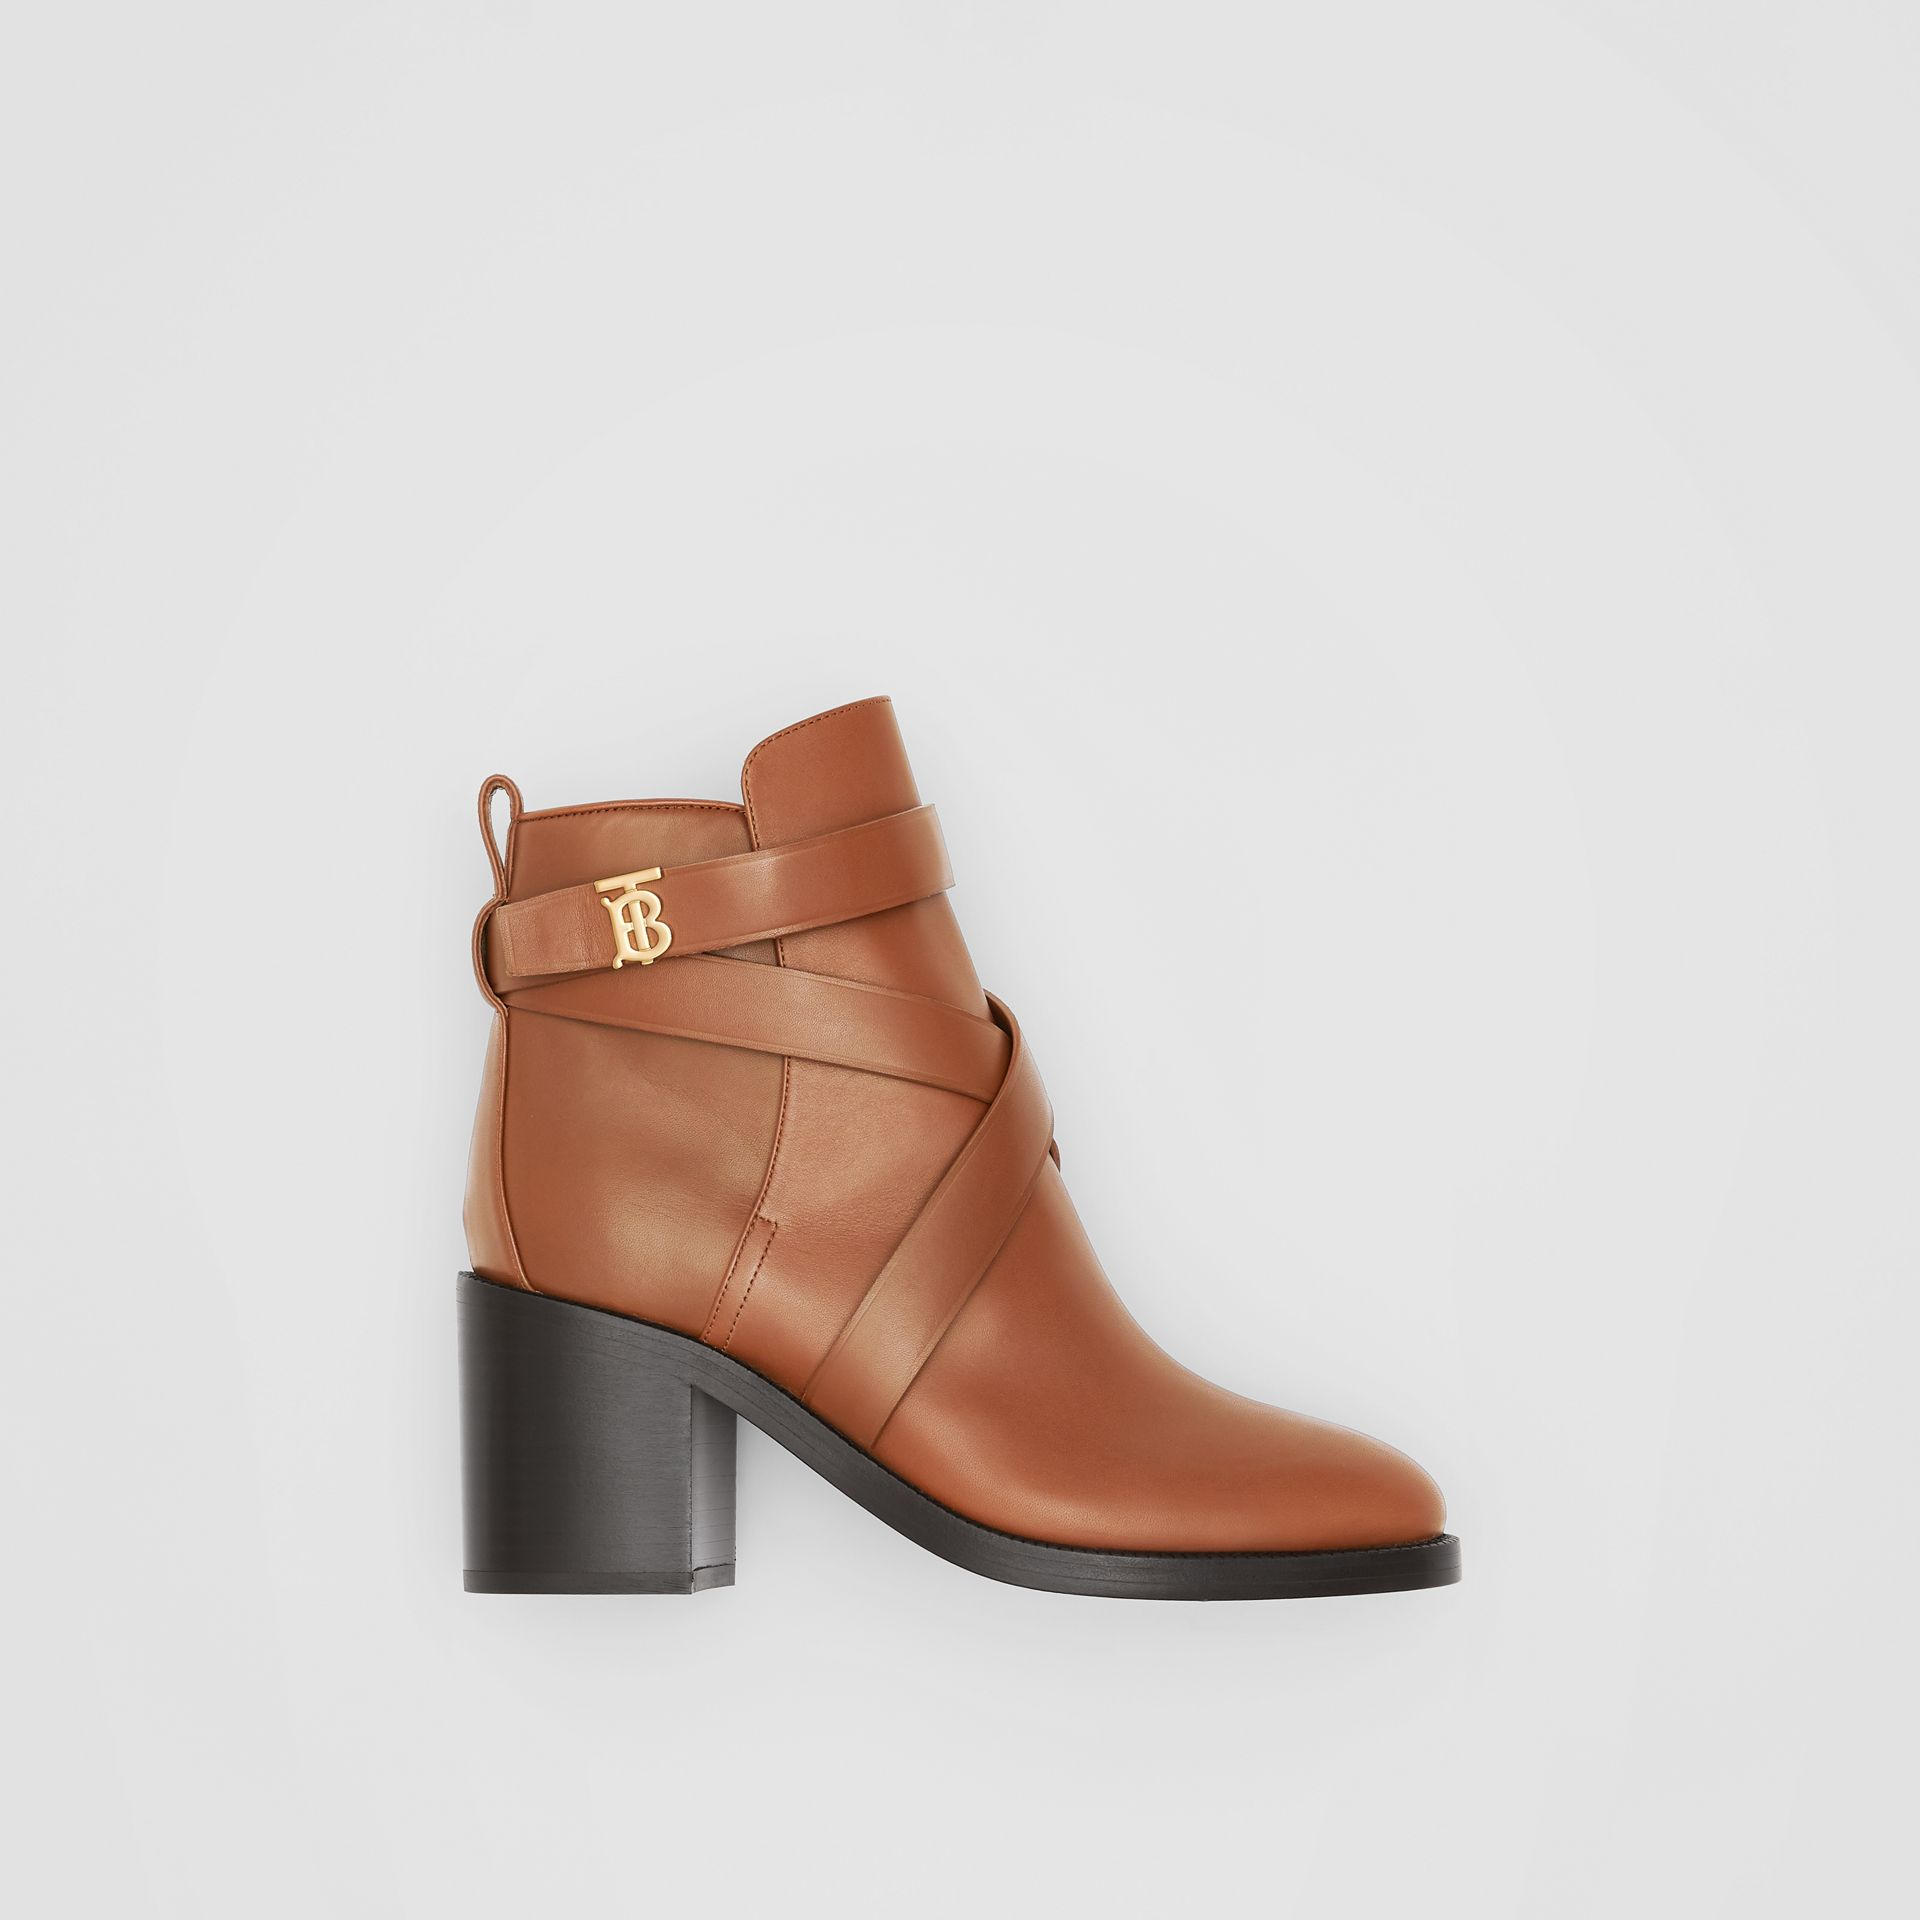 Monogram Motif Leather Ankle Boots in Tan - Women | Burberry - gallery image 0